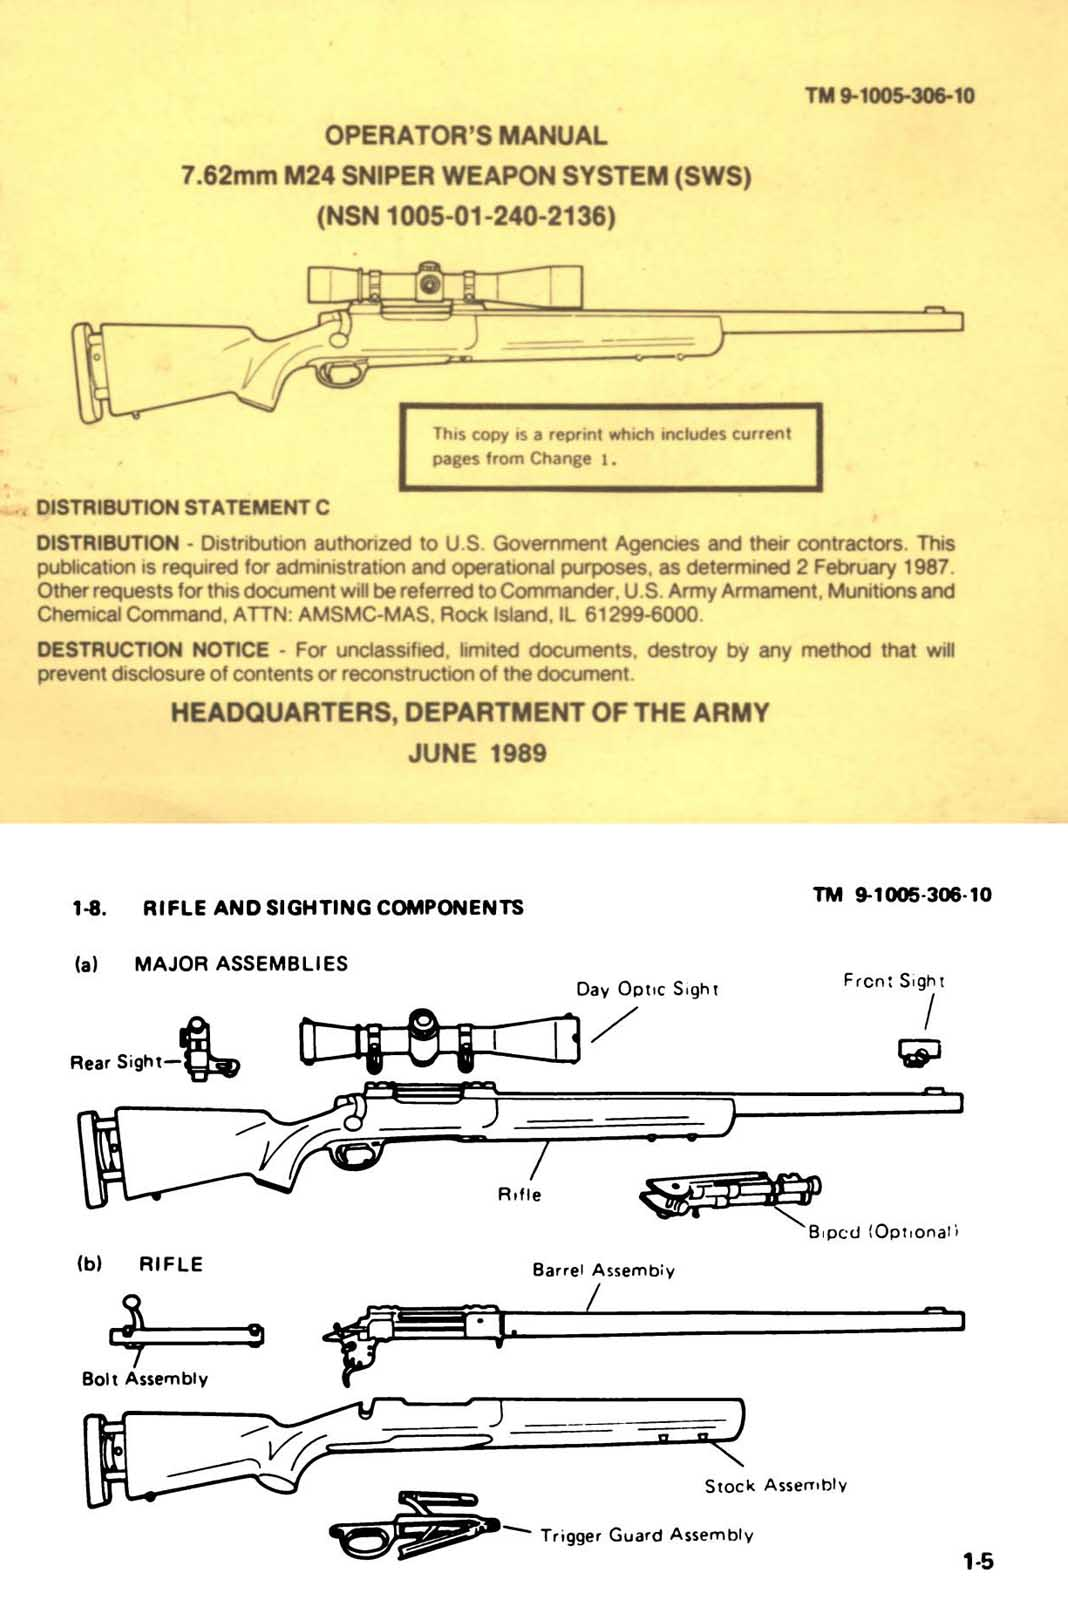 Operators Manual 1989 Sniper Weapons System (SWS) 7.62mm M24